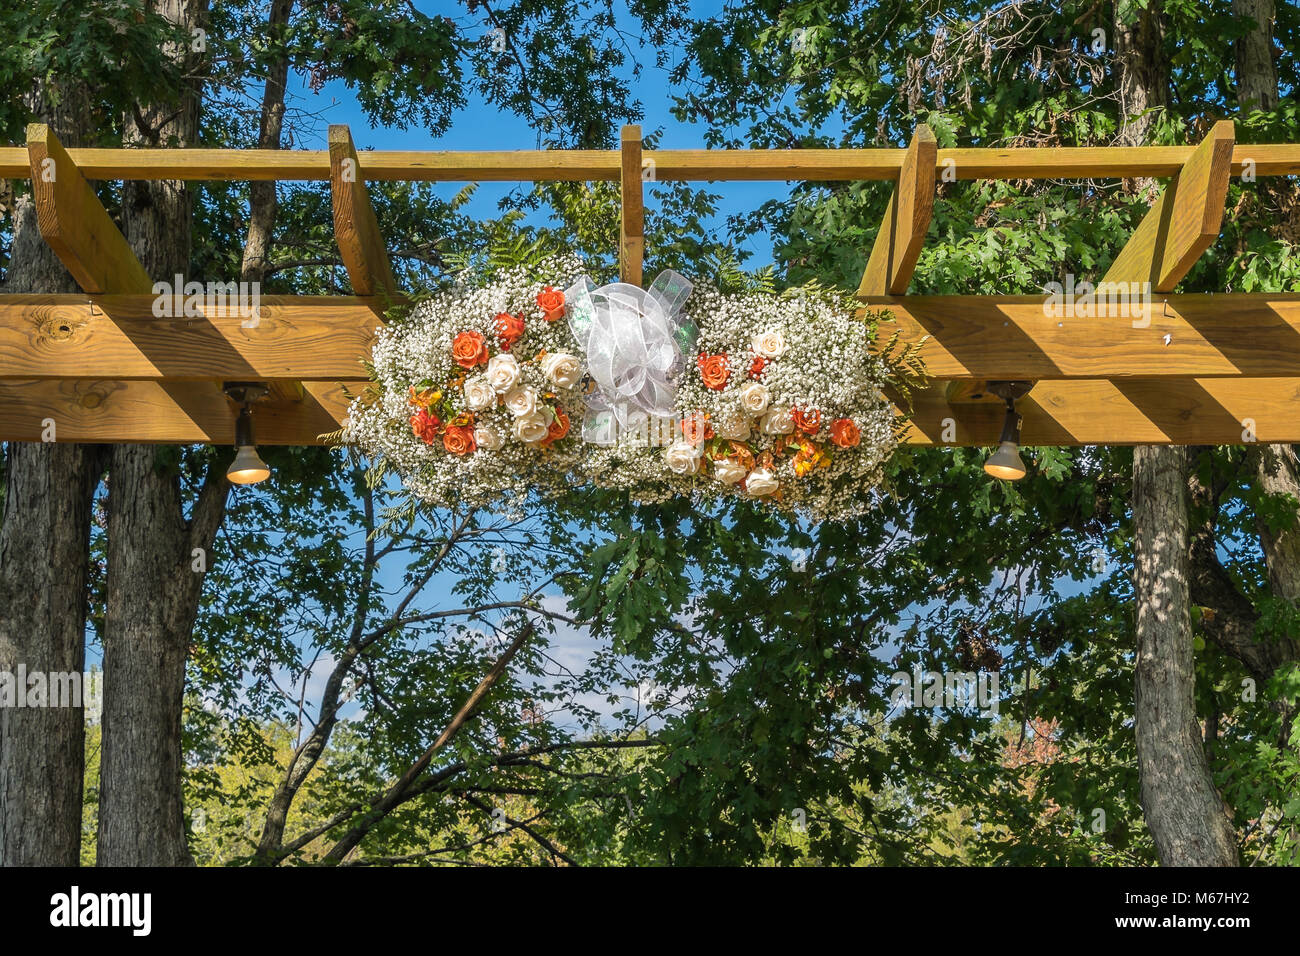 Decorations for the wedding day. - Stock Image